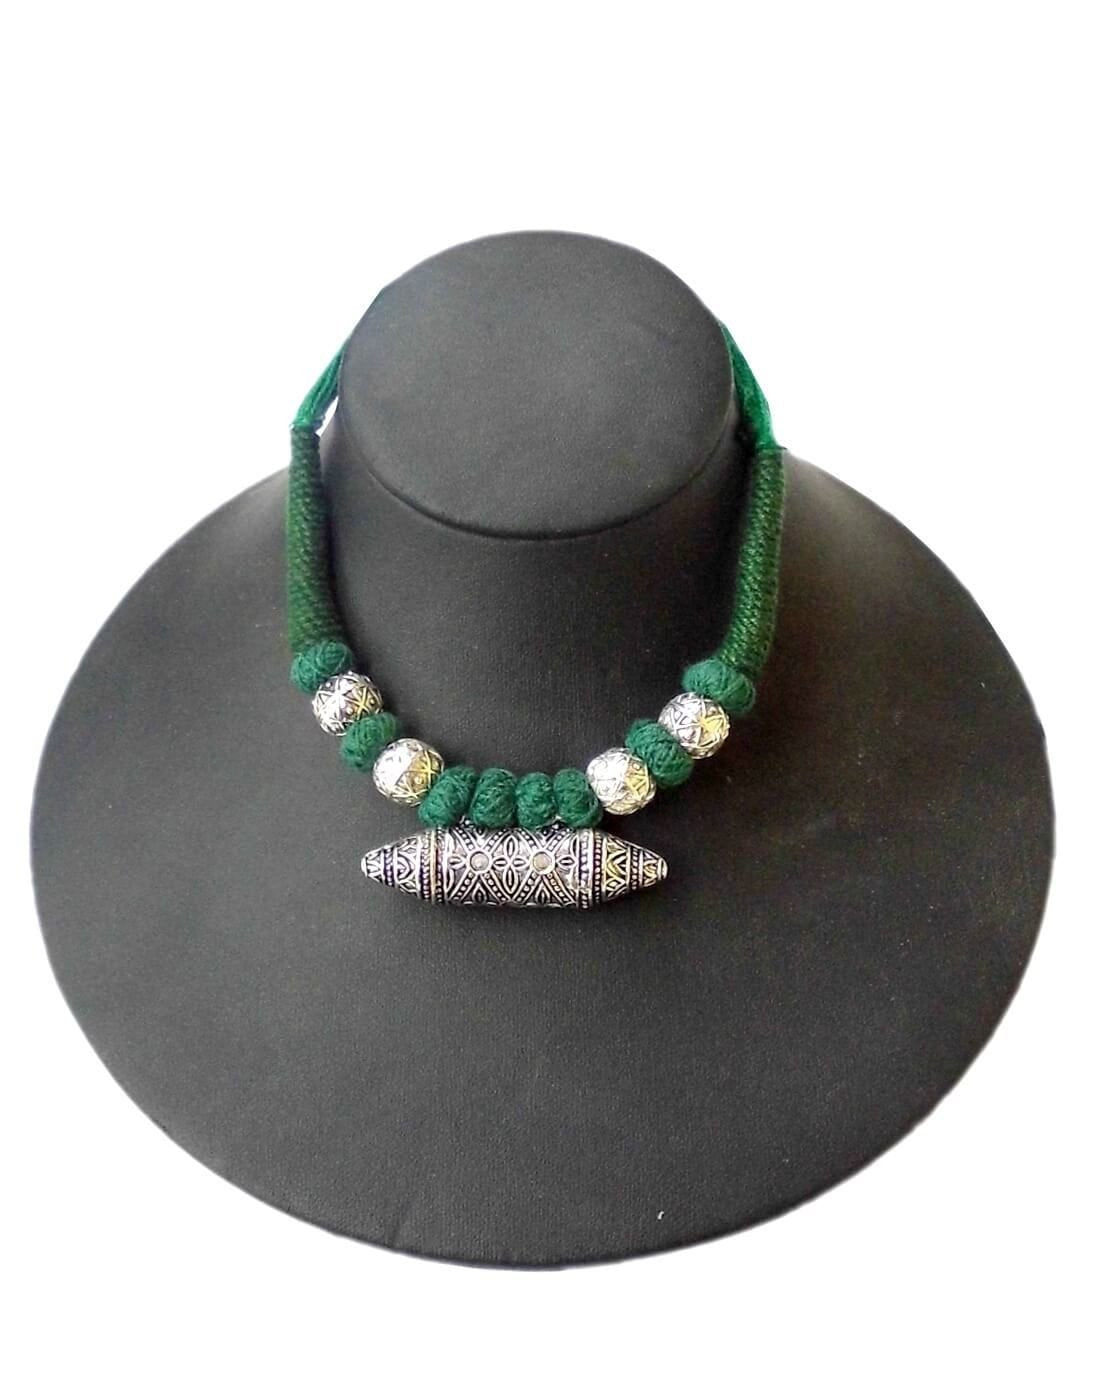 Threaded German Silver Necklace With Taweez Pendant- Green